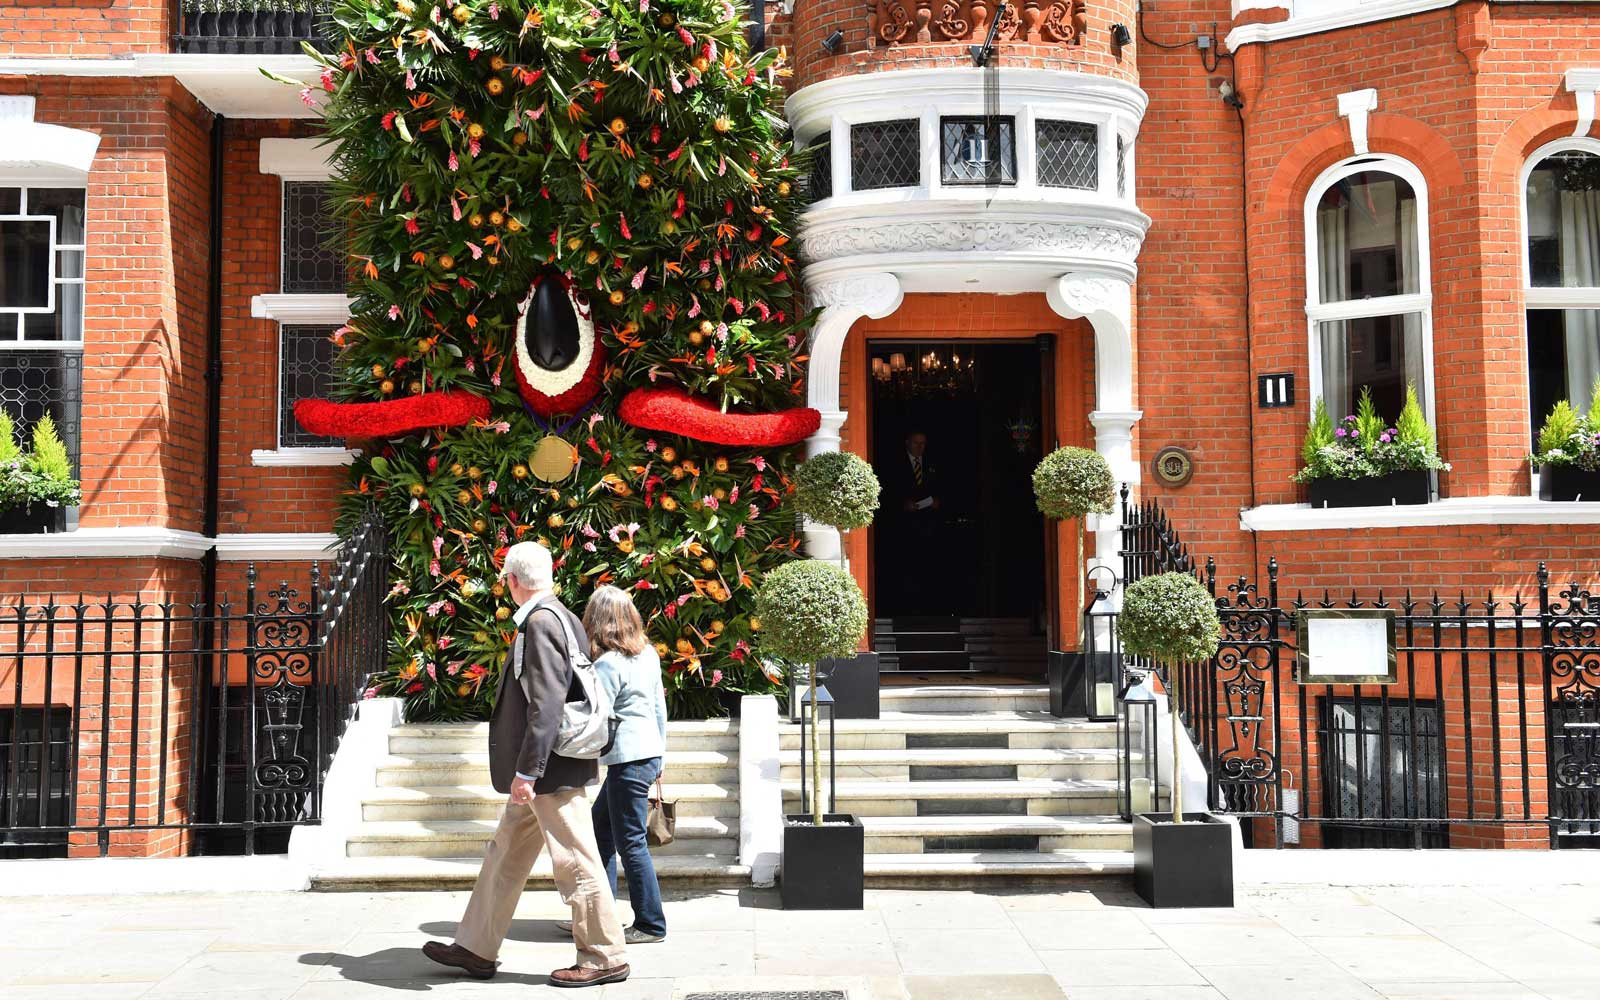 Exterior of the 11 Cadogan Gardens Hotel in London